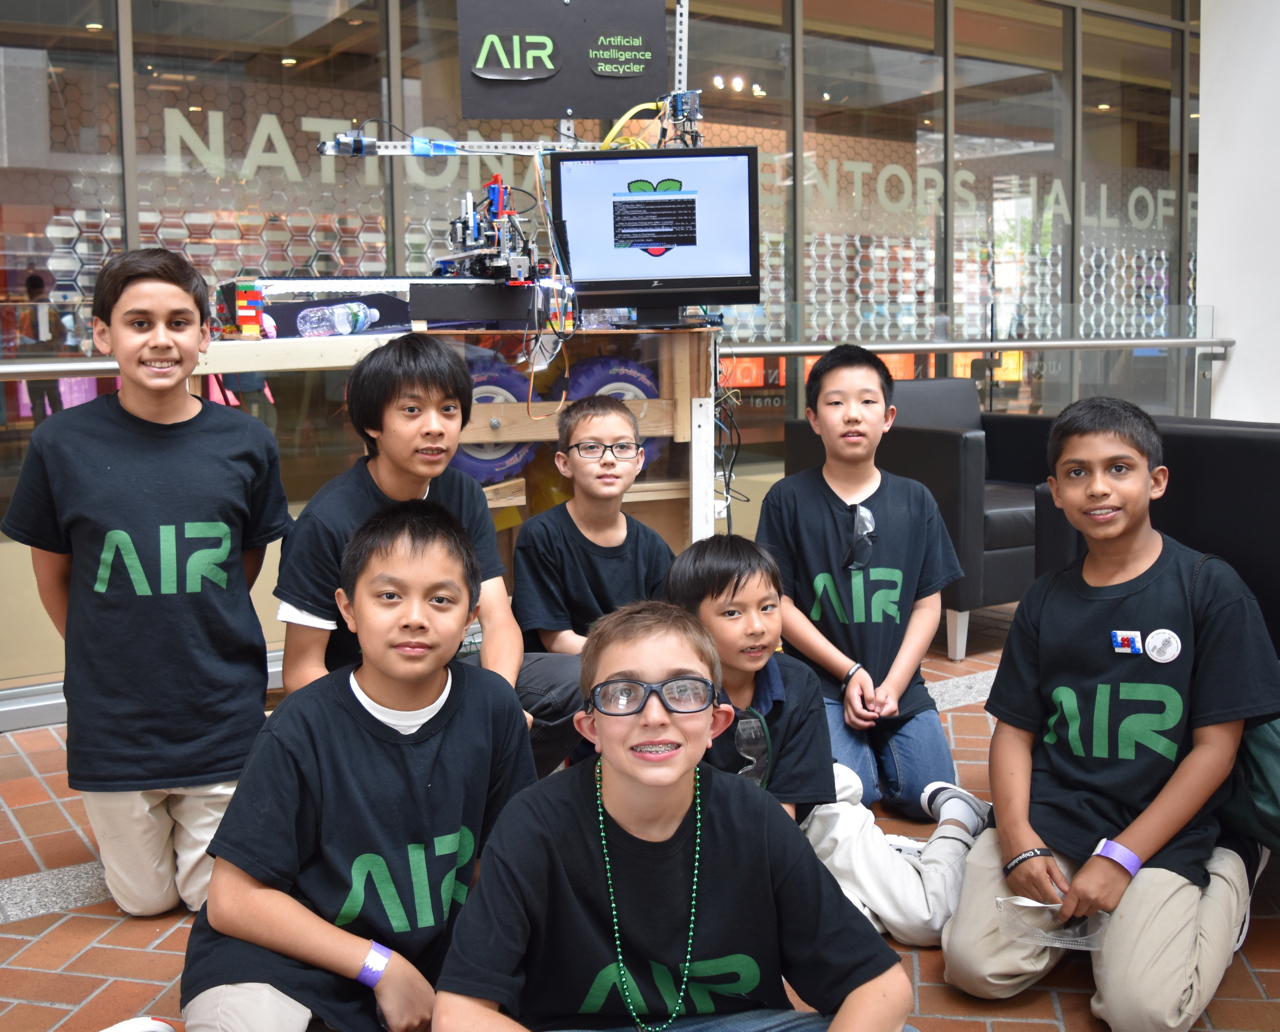 Team A.I.R. Of Livingston Robotics Club. We Invented The Artificial  Intelligence Recycler (A.I.R). AIR Is An Automated Recycling Machine, ...